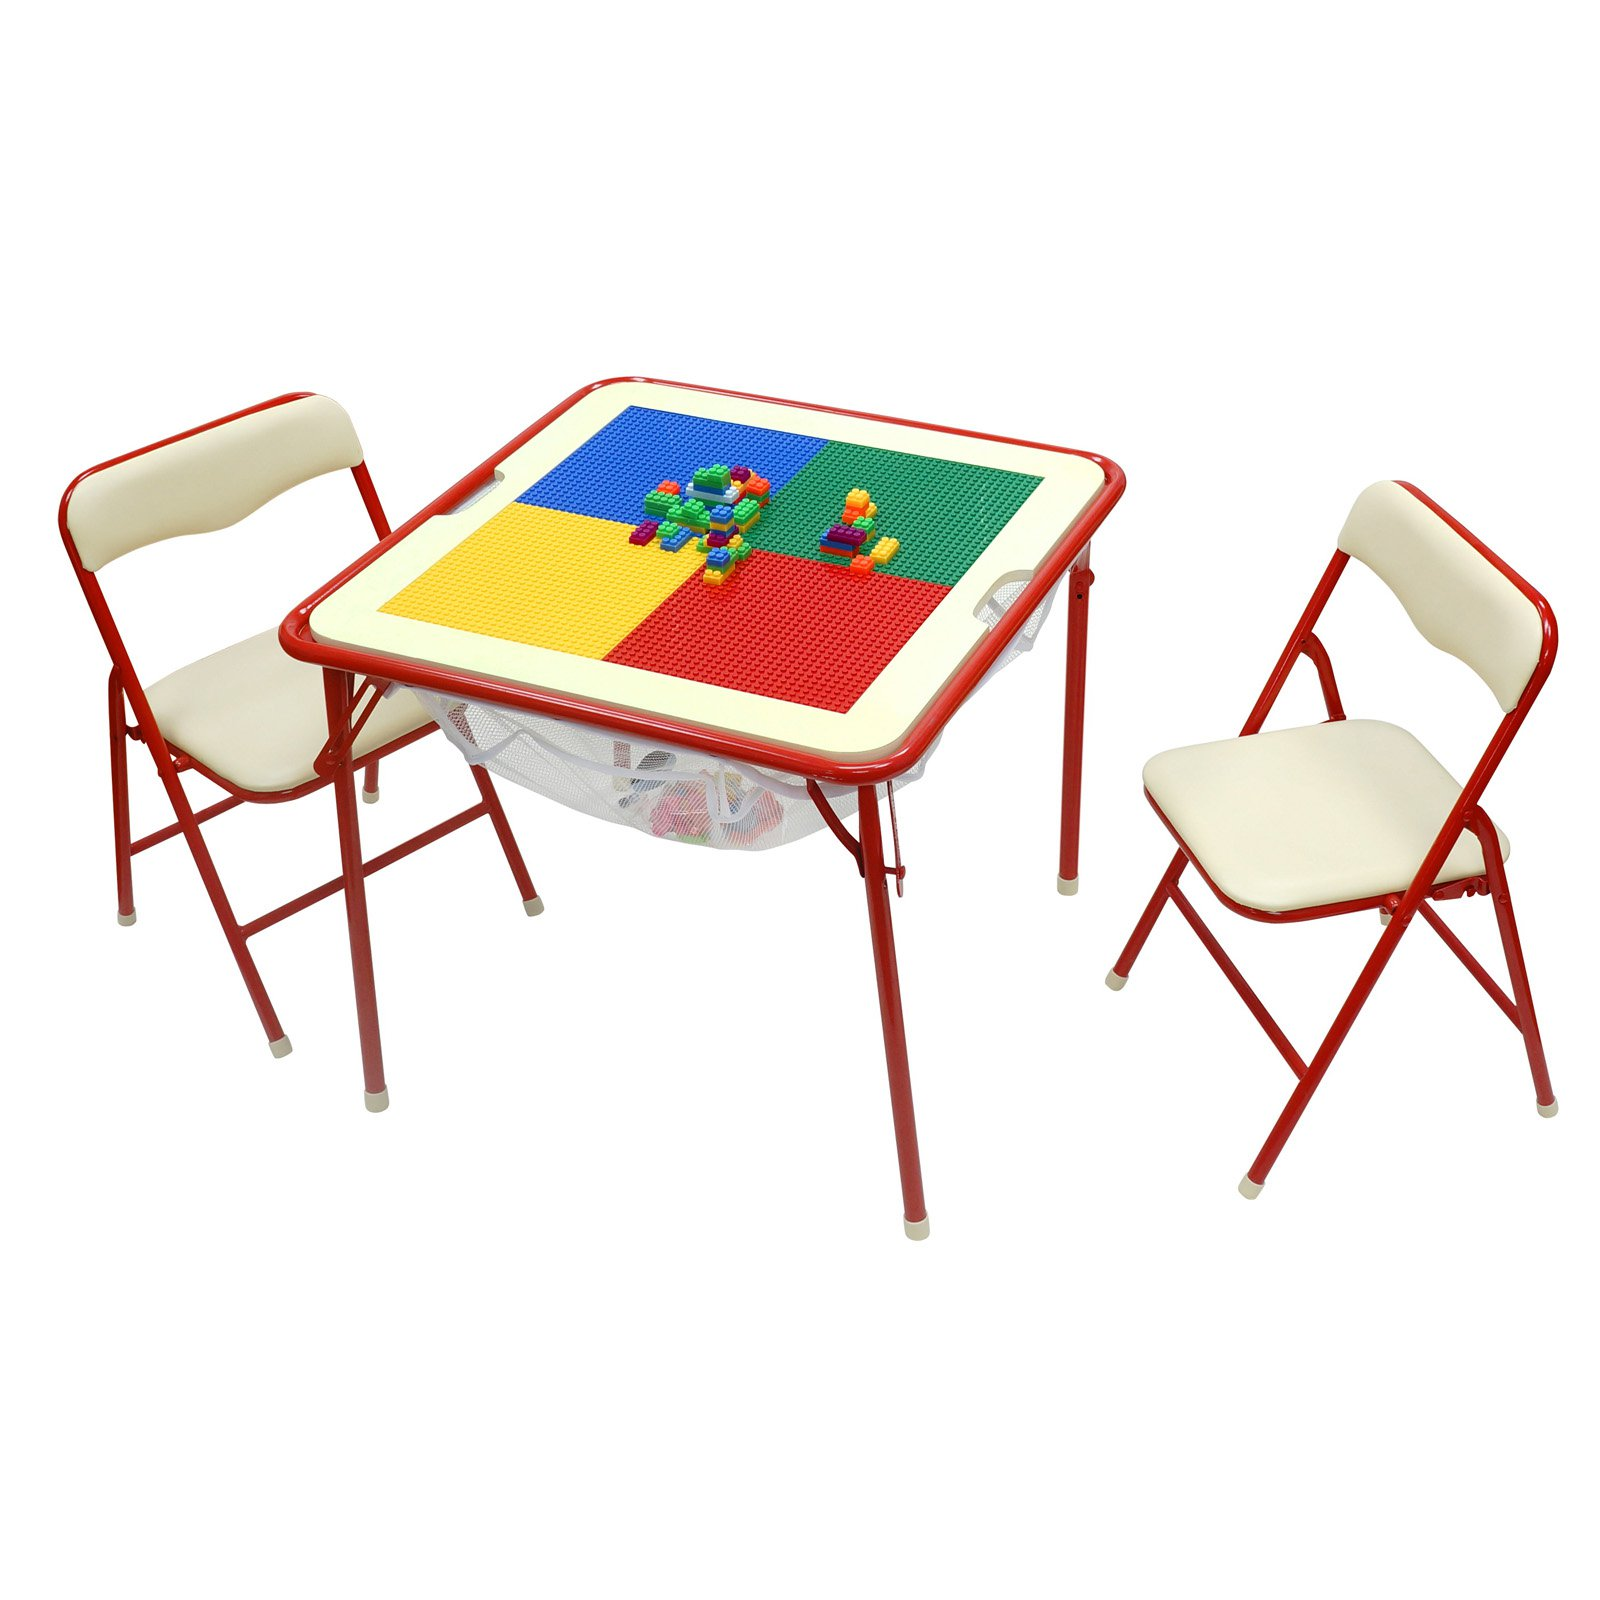 OKids Childrens Metal Flip Top Table and Chair Set